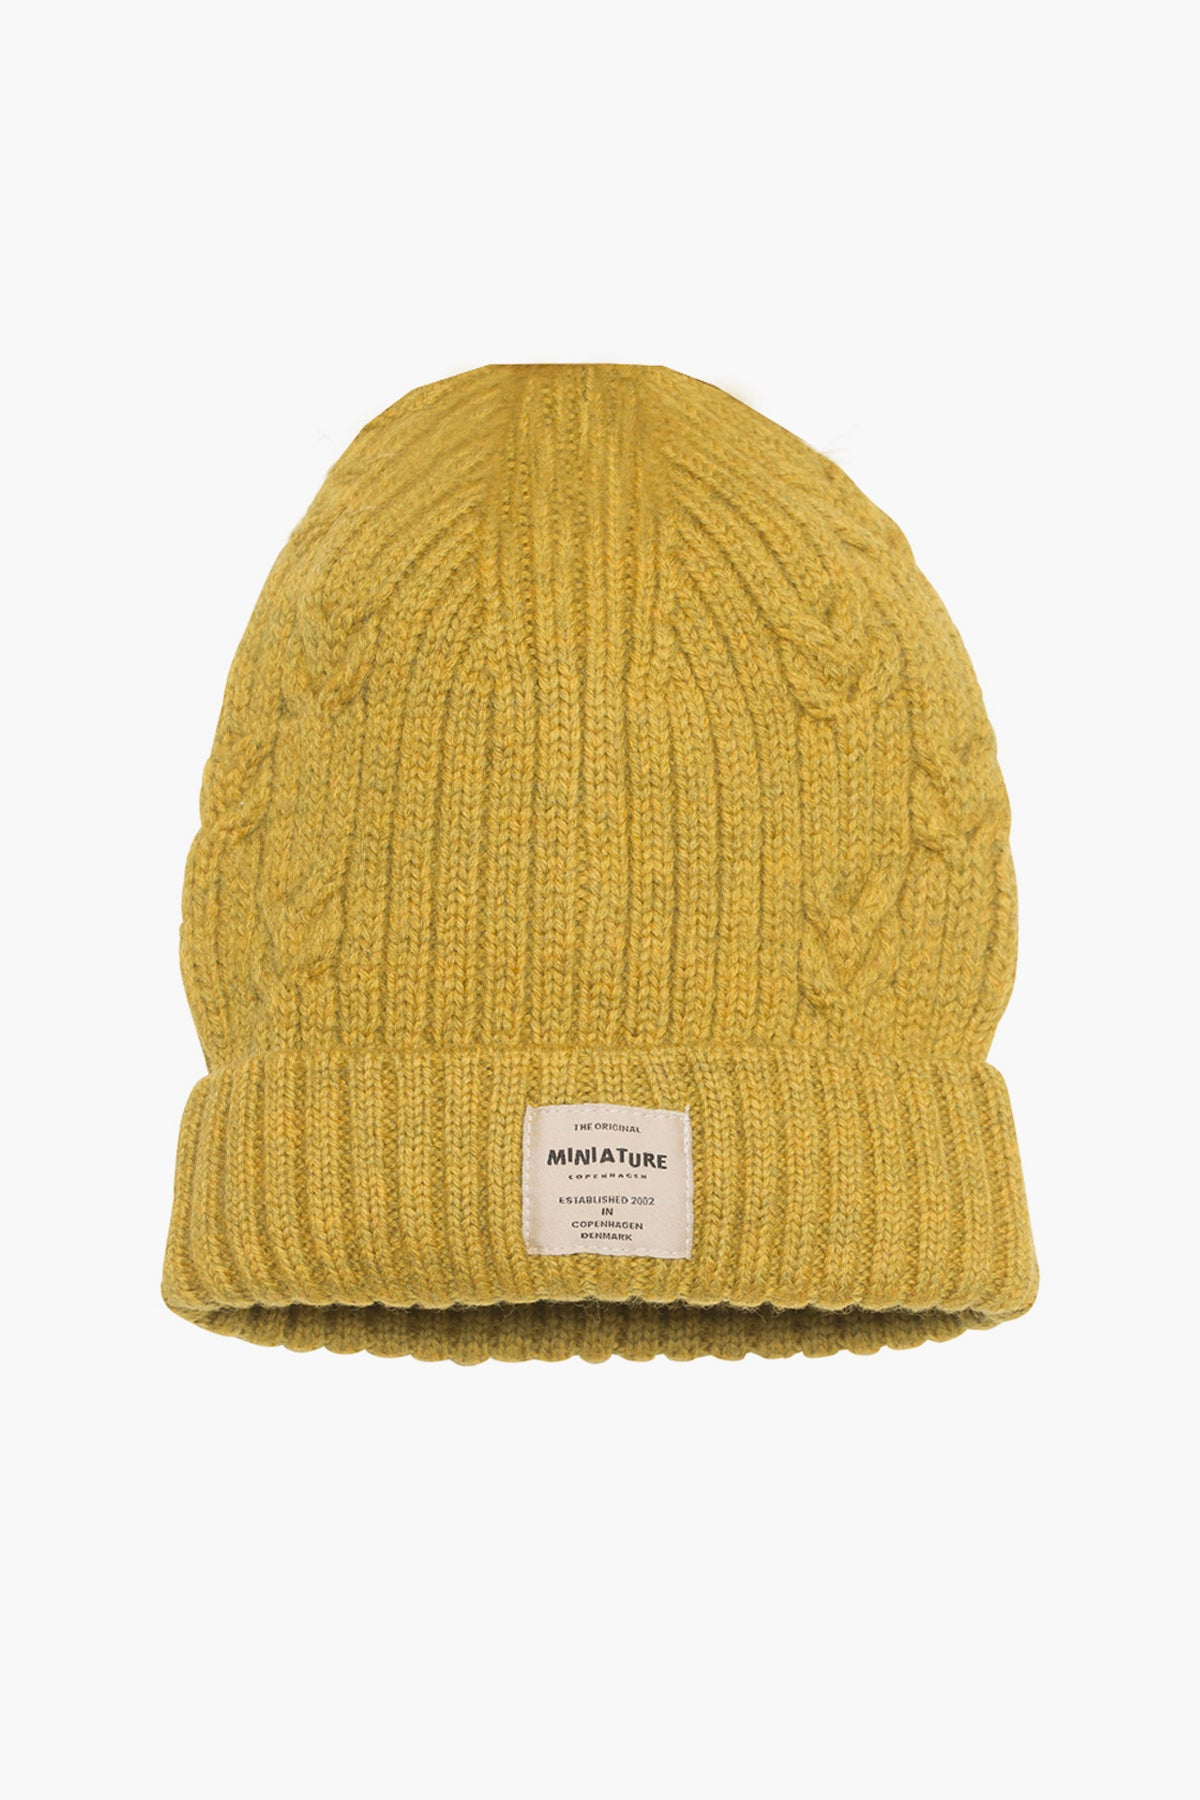 Mini A Ture Merino Knit Kids Hat - Dijon